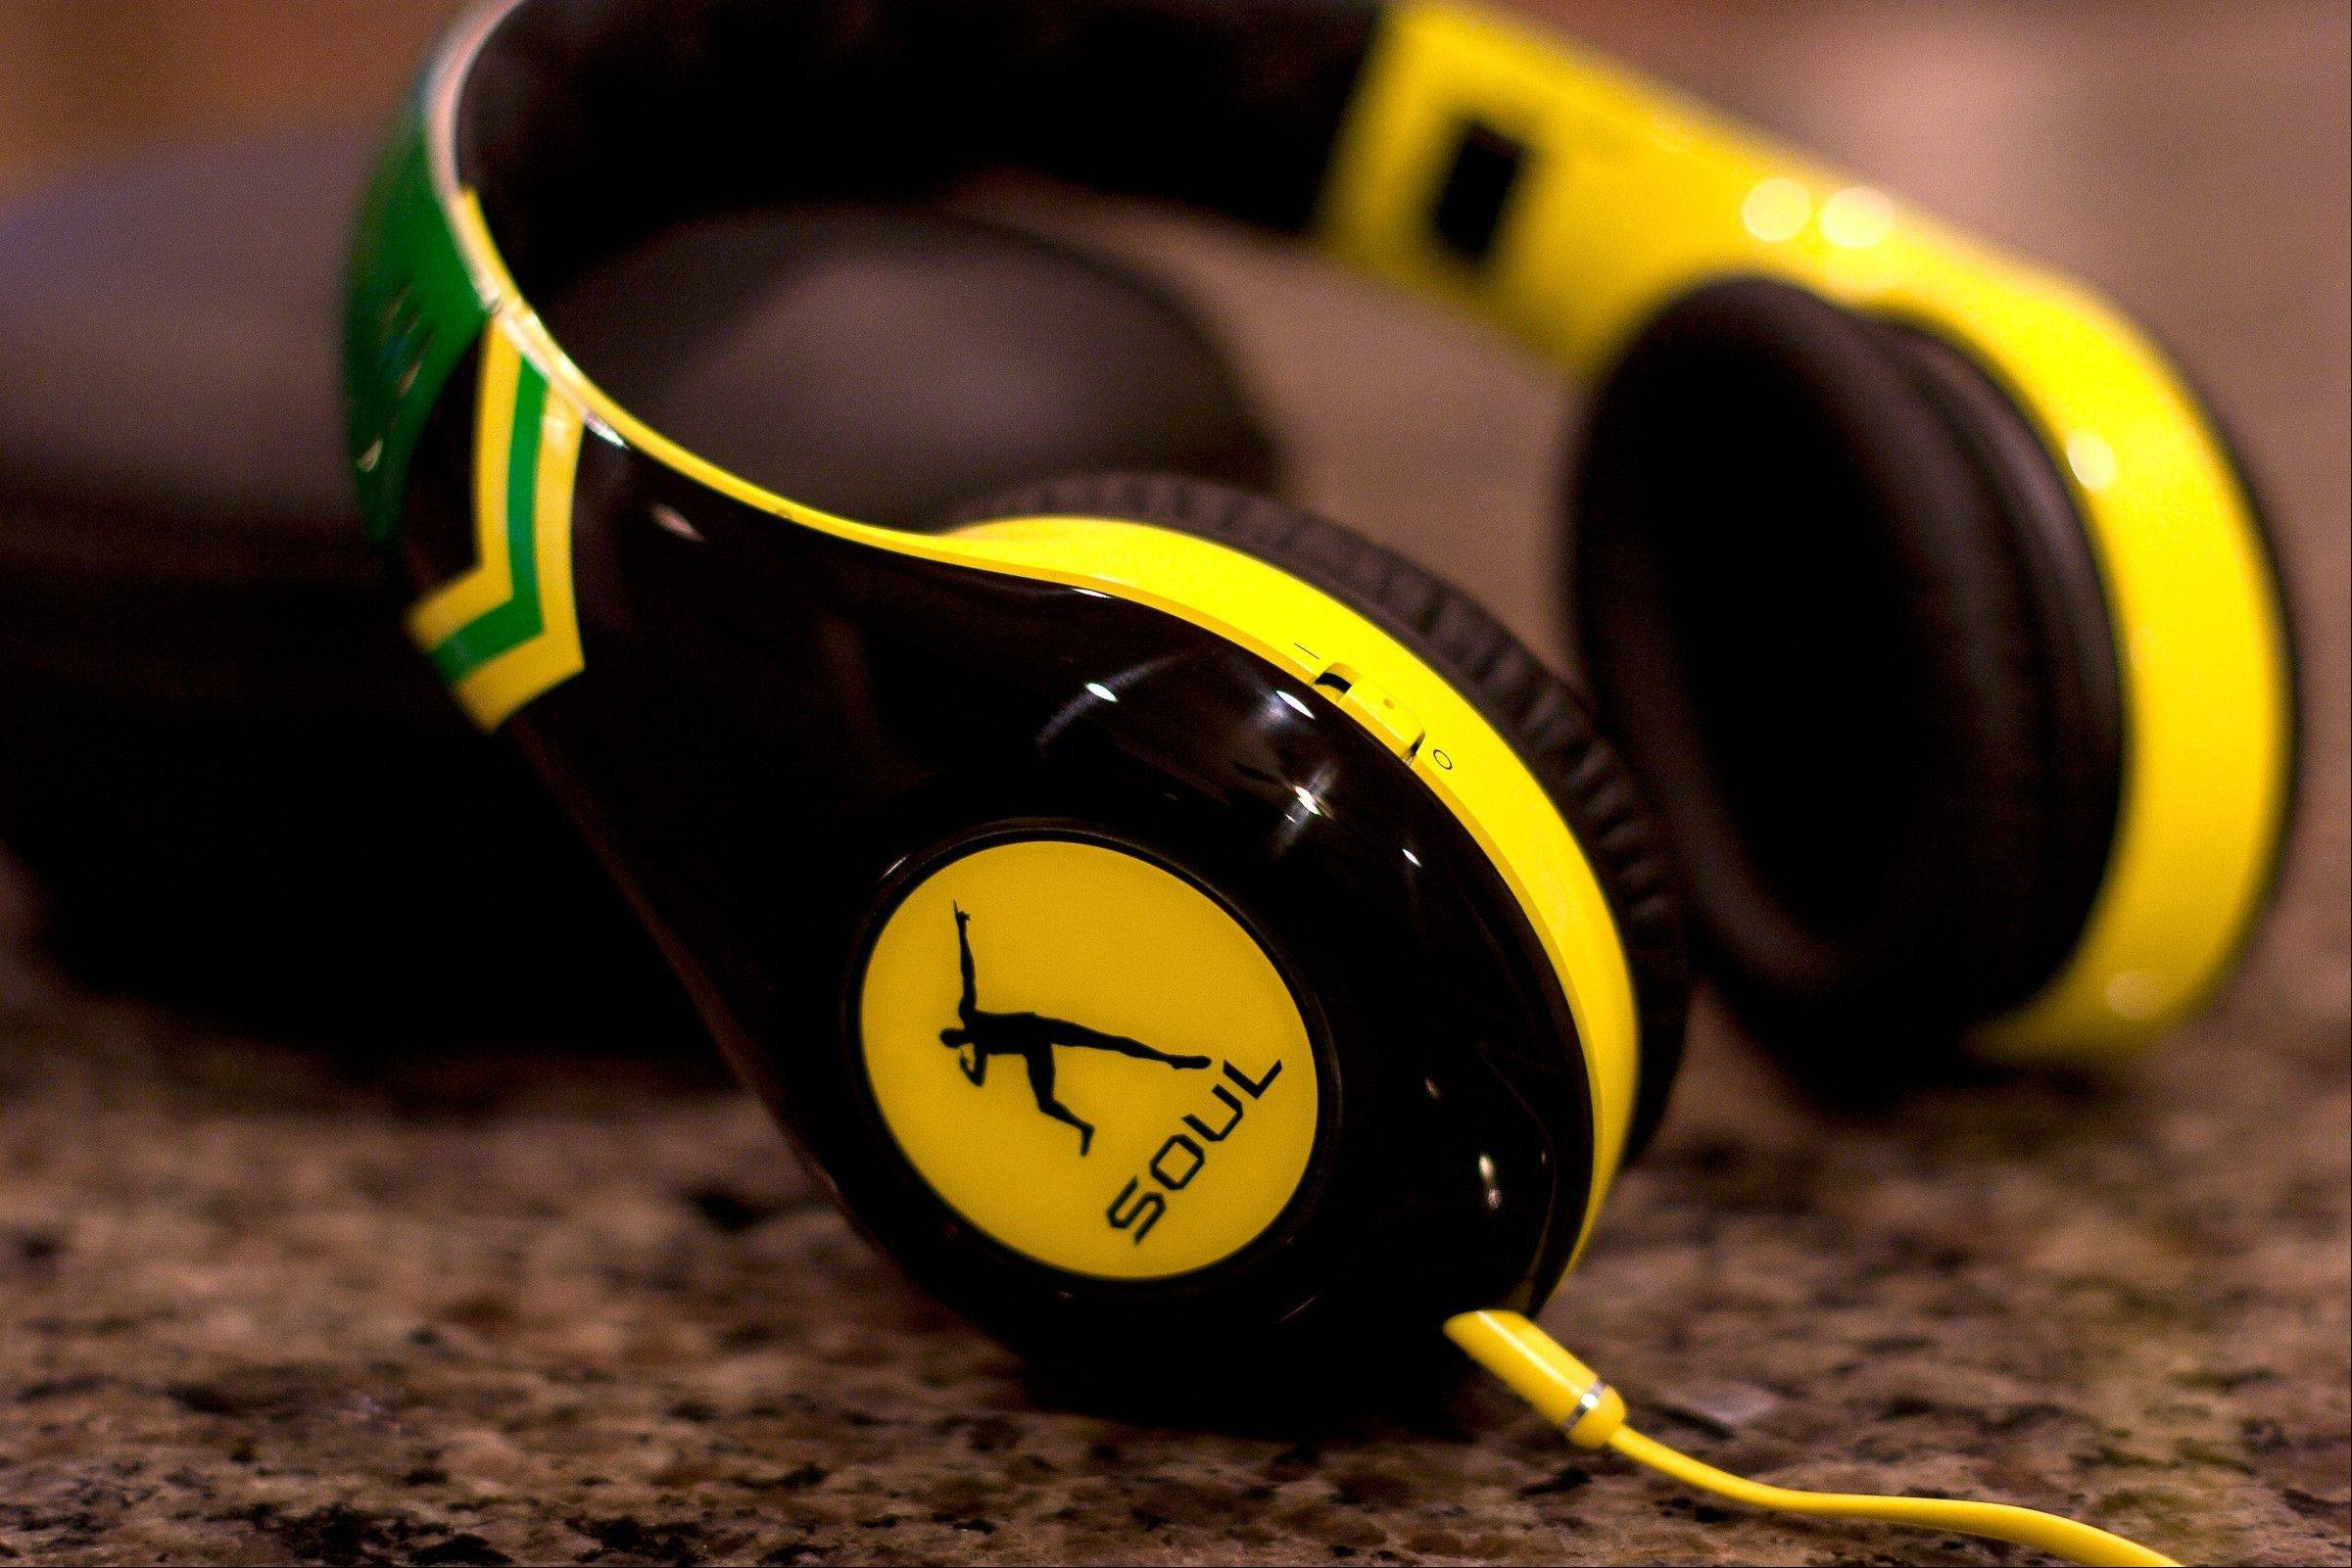 A pair of headphones from SOUL by Ludacris. The Usain Bolt signature model headphones feature noise-canceling technology, 40 mm drivers and collapsible construction.(AP Photo/Ron Harris)